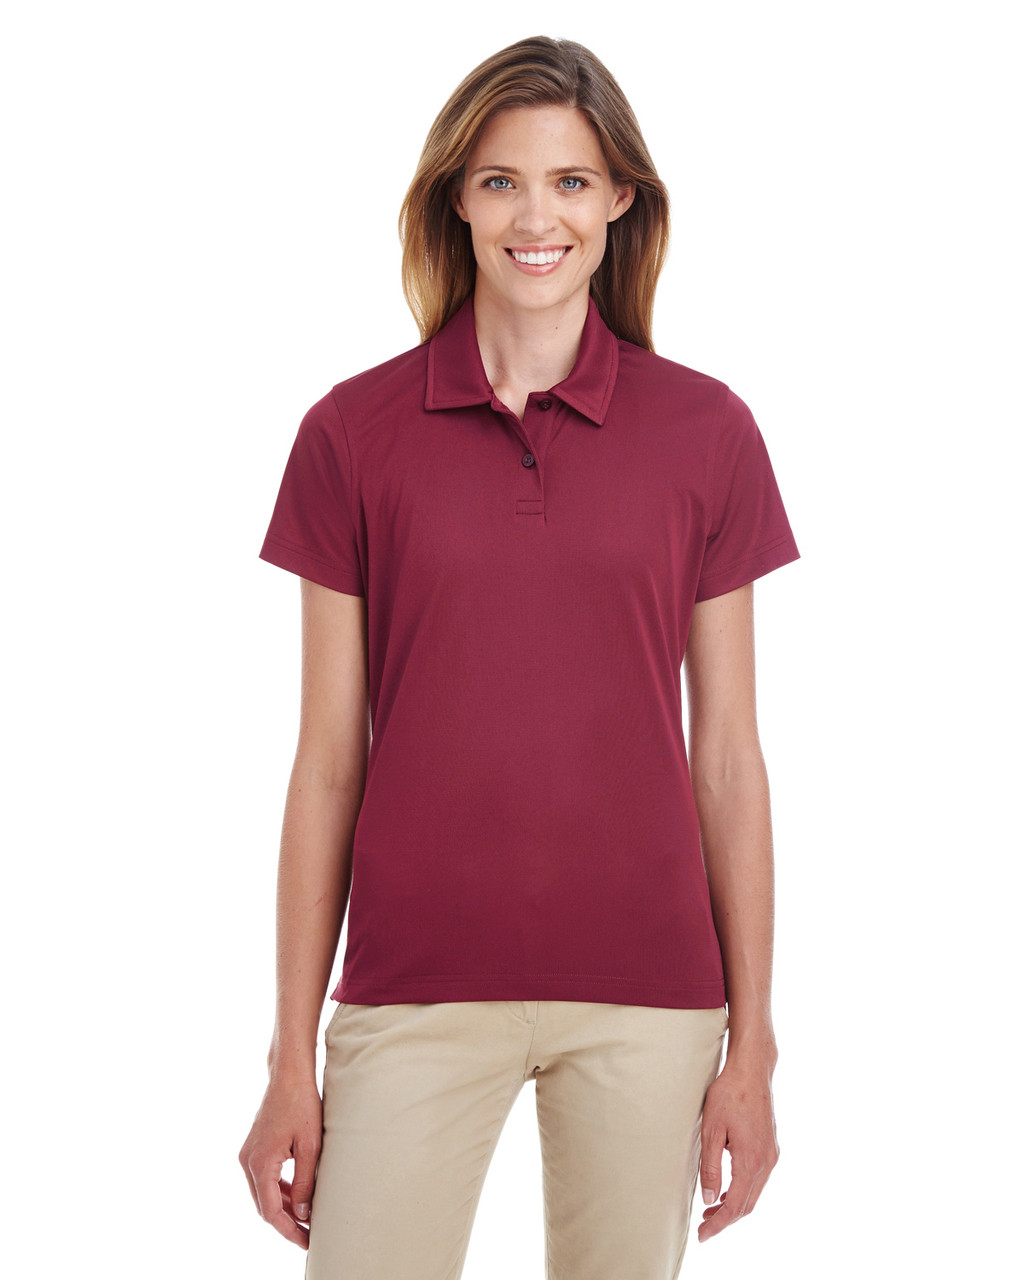 Sport Maroon - TT21W Team 365 Ladies' Command Snag Protection Polo Shirt